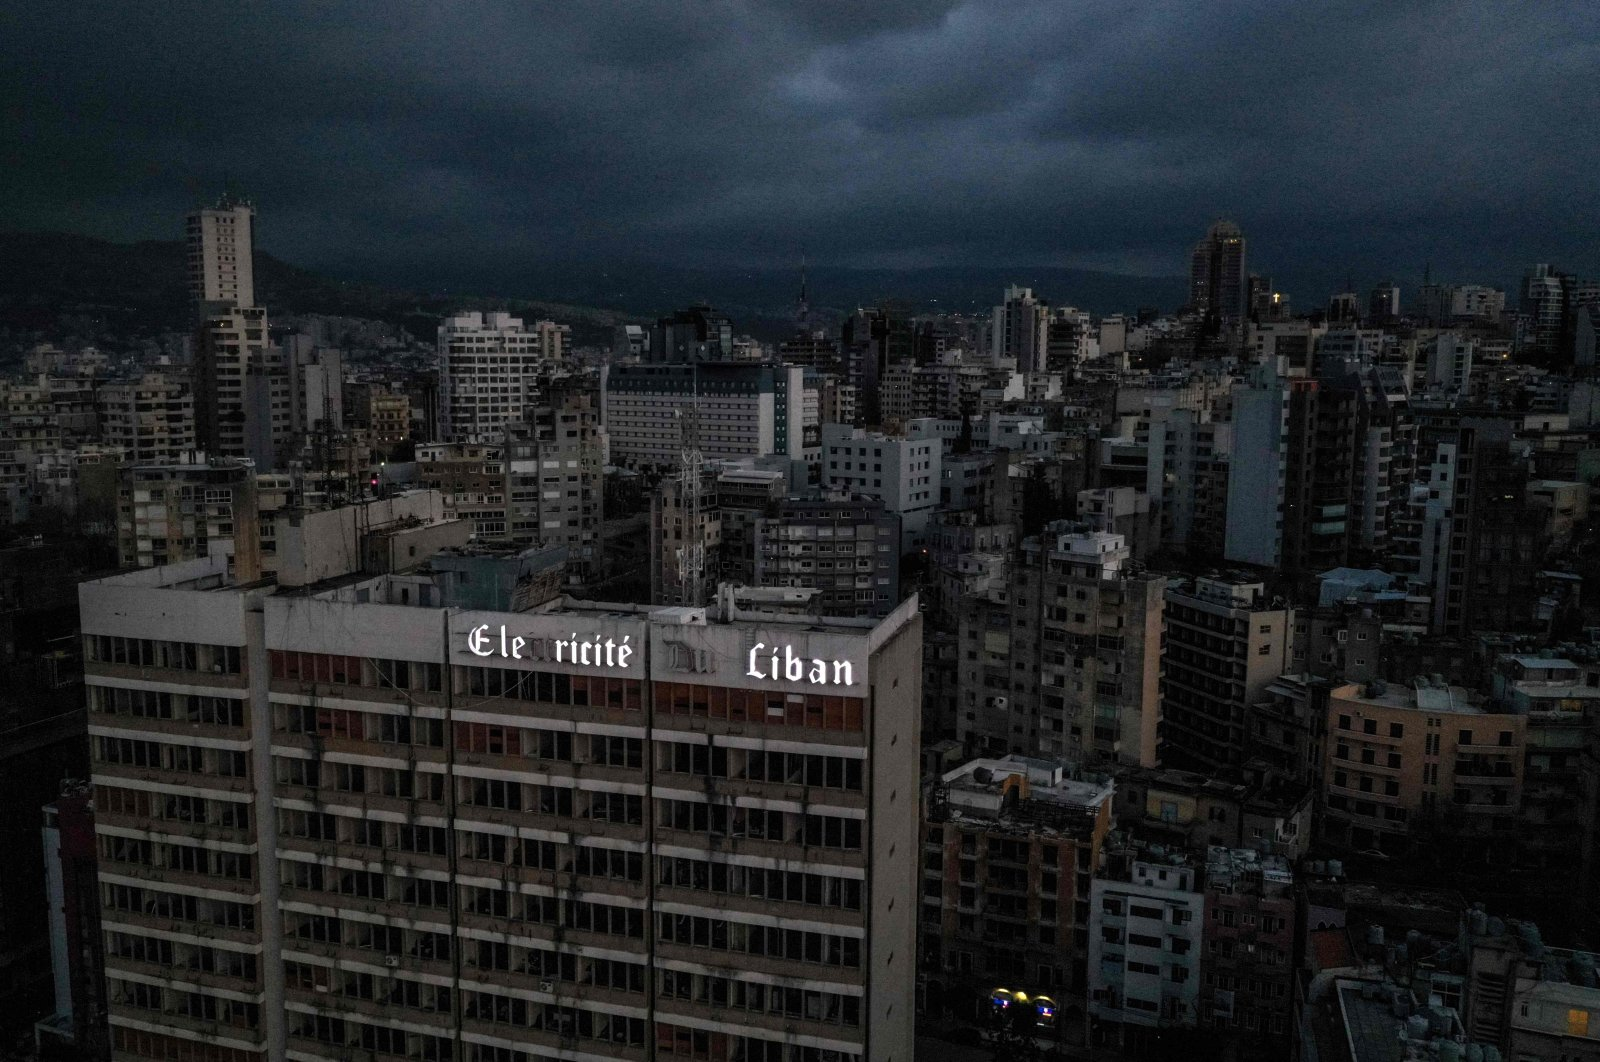 An aerial view shows Lebanon's capital Beirut in darkness during a power outage, April 3, 2021. (AFP Photo)